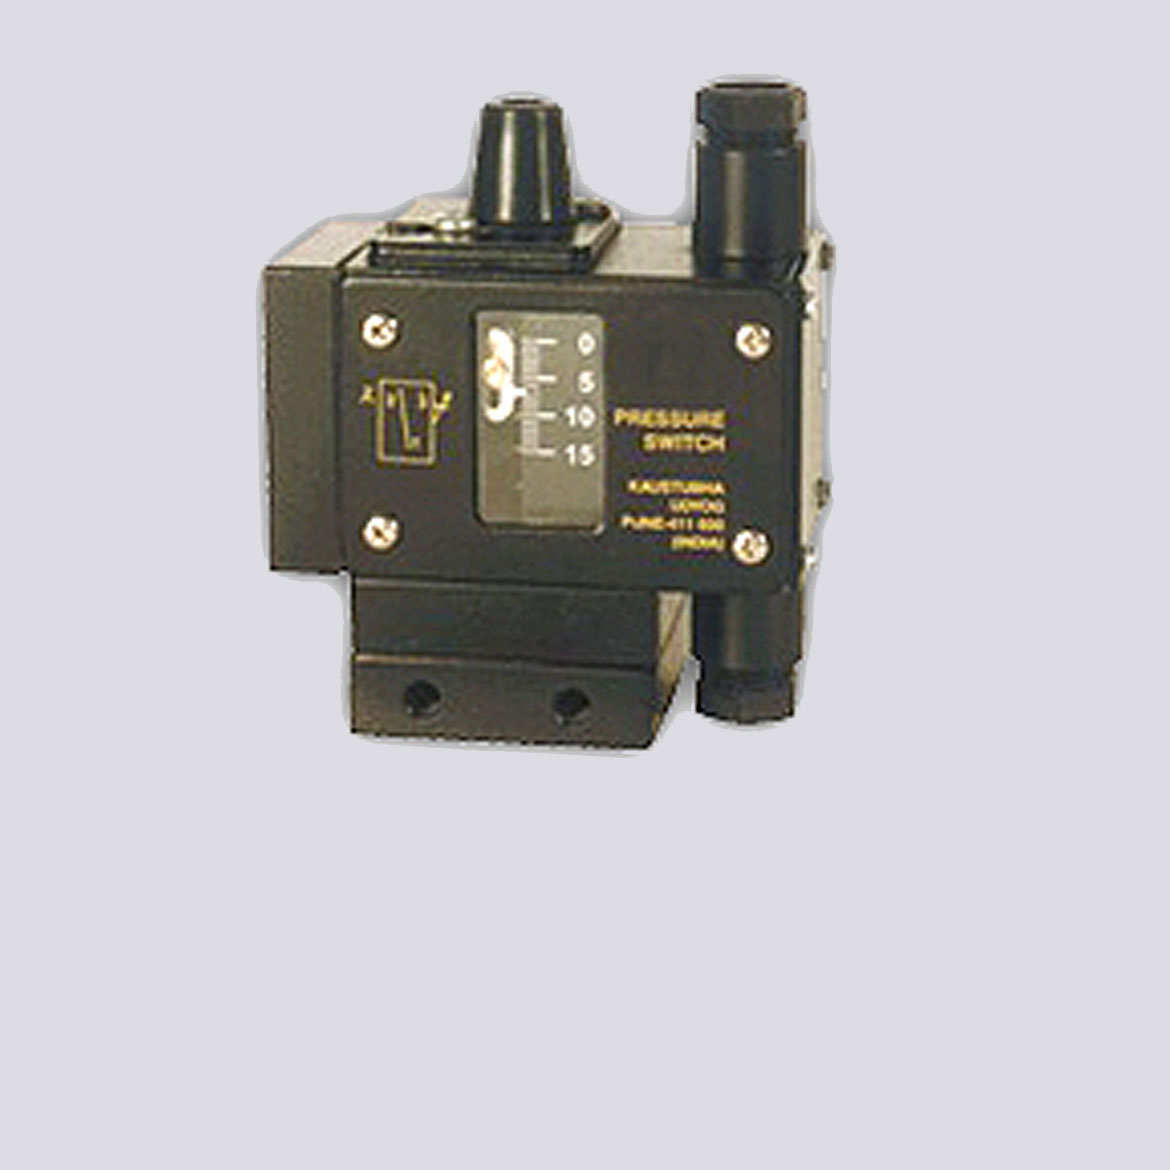 2 SPDT Pressure Switches